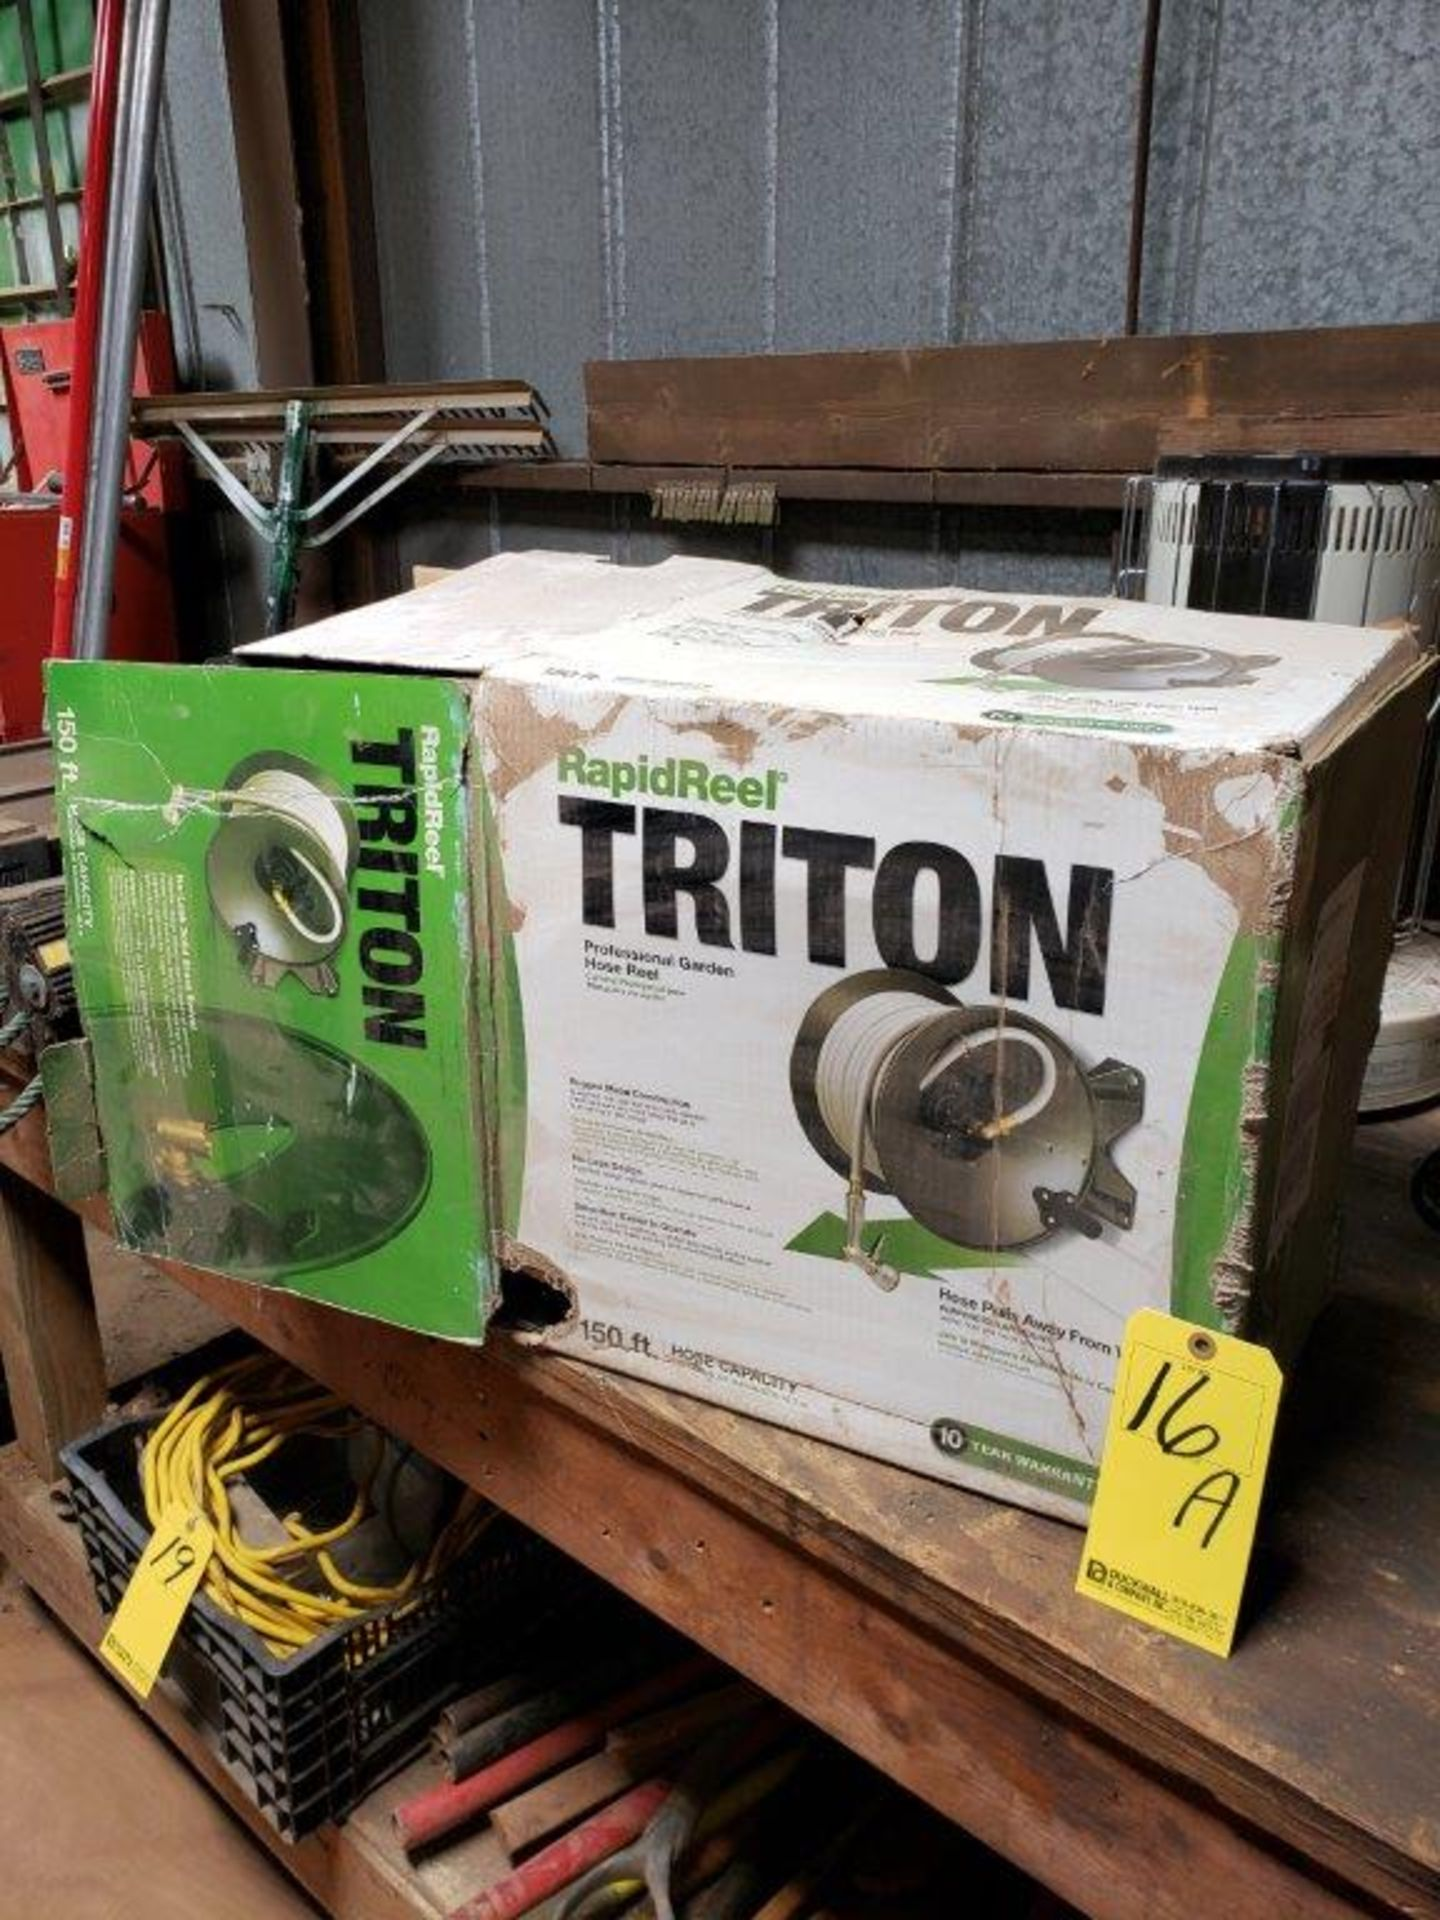 TRITON HOSE REEL - NEW IN BOX (NO HOSE INCLUDED)